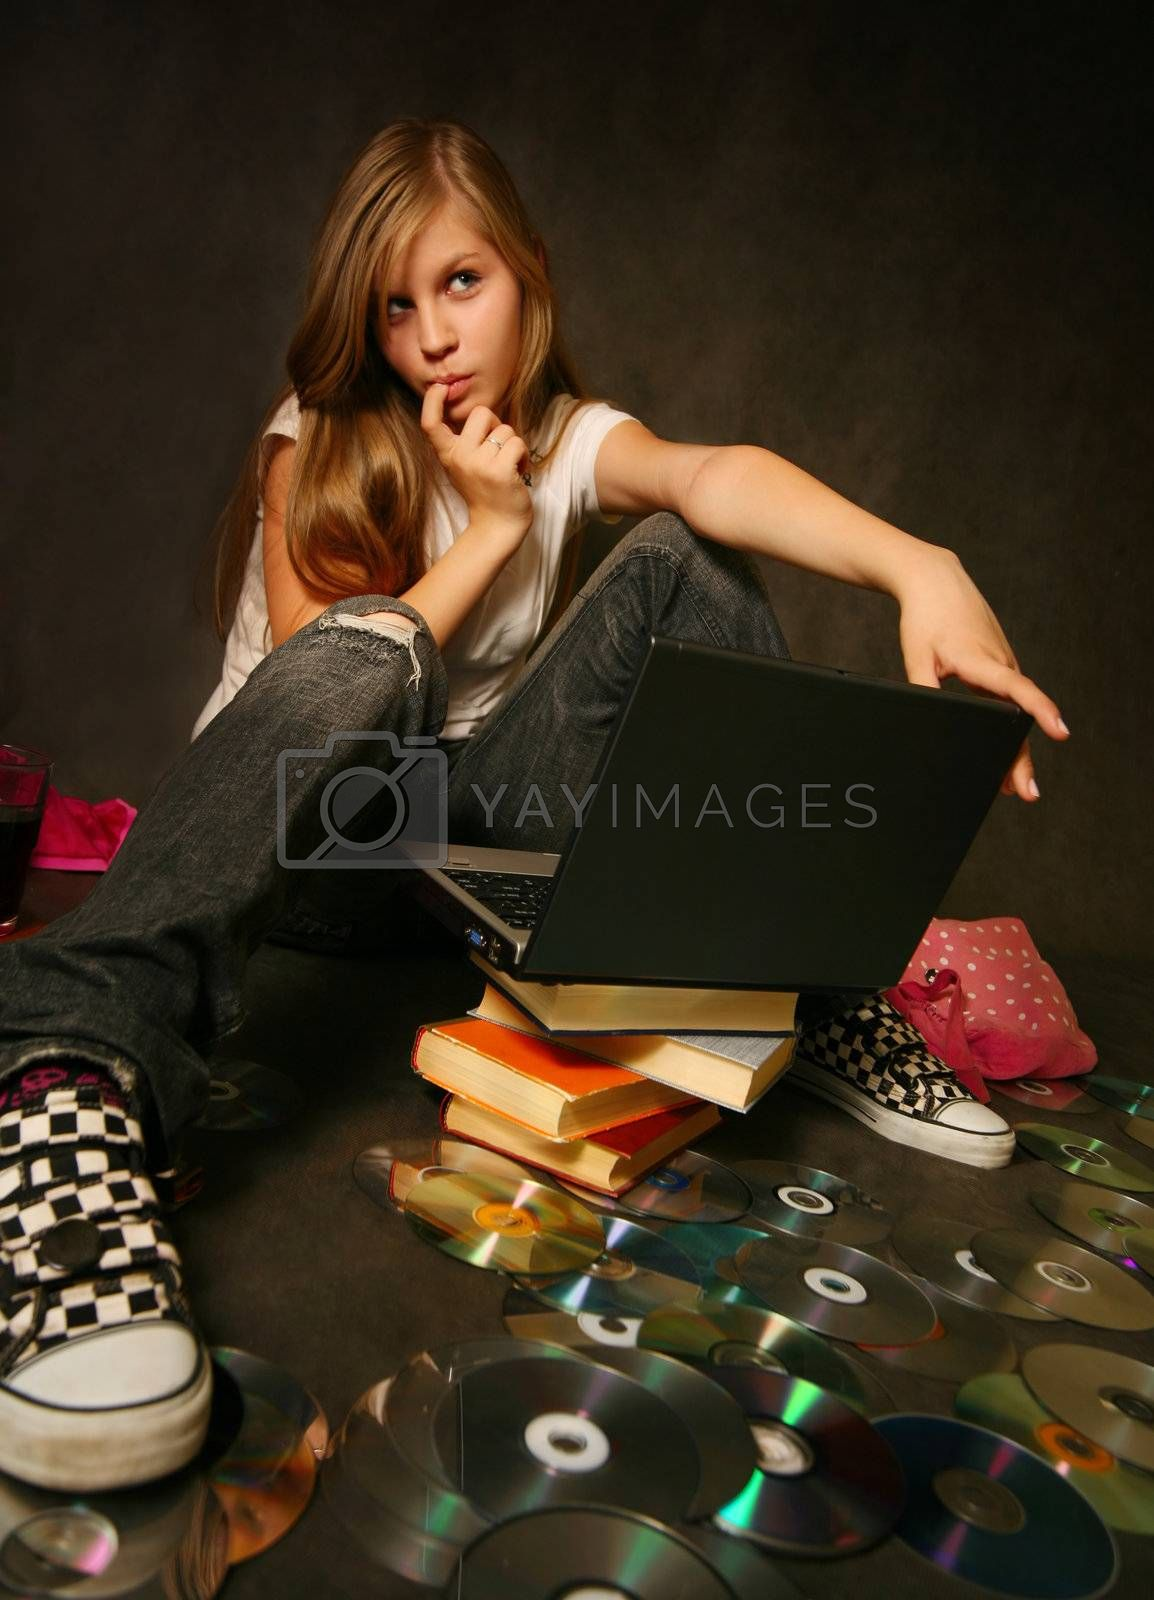 The young girl among books with a computer